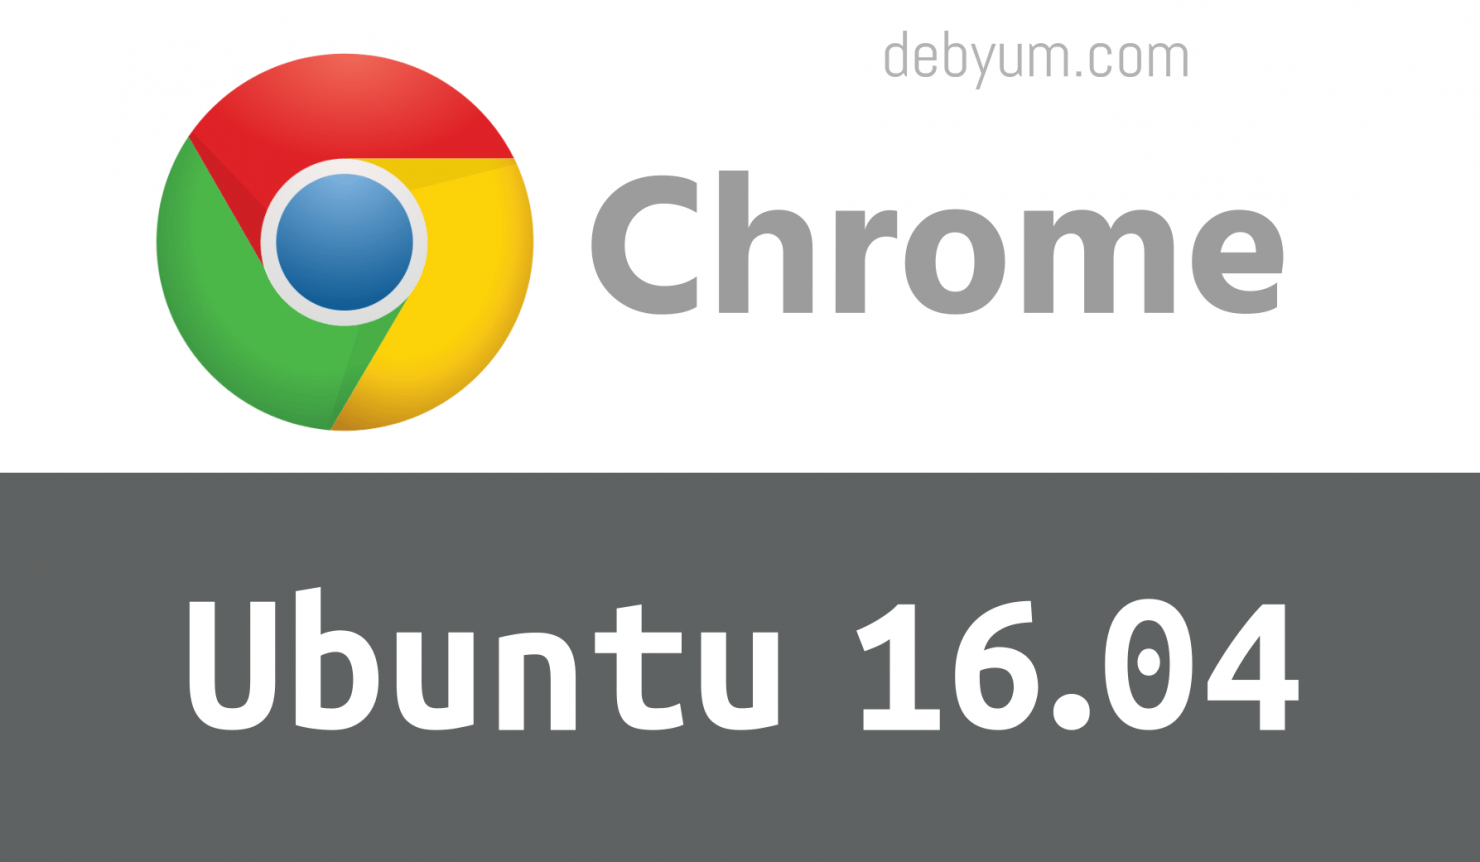 Install latest stable version of Google Chrome in Ubuntu 16 04 - Debyum